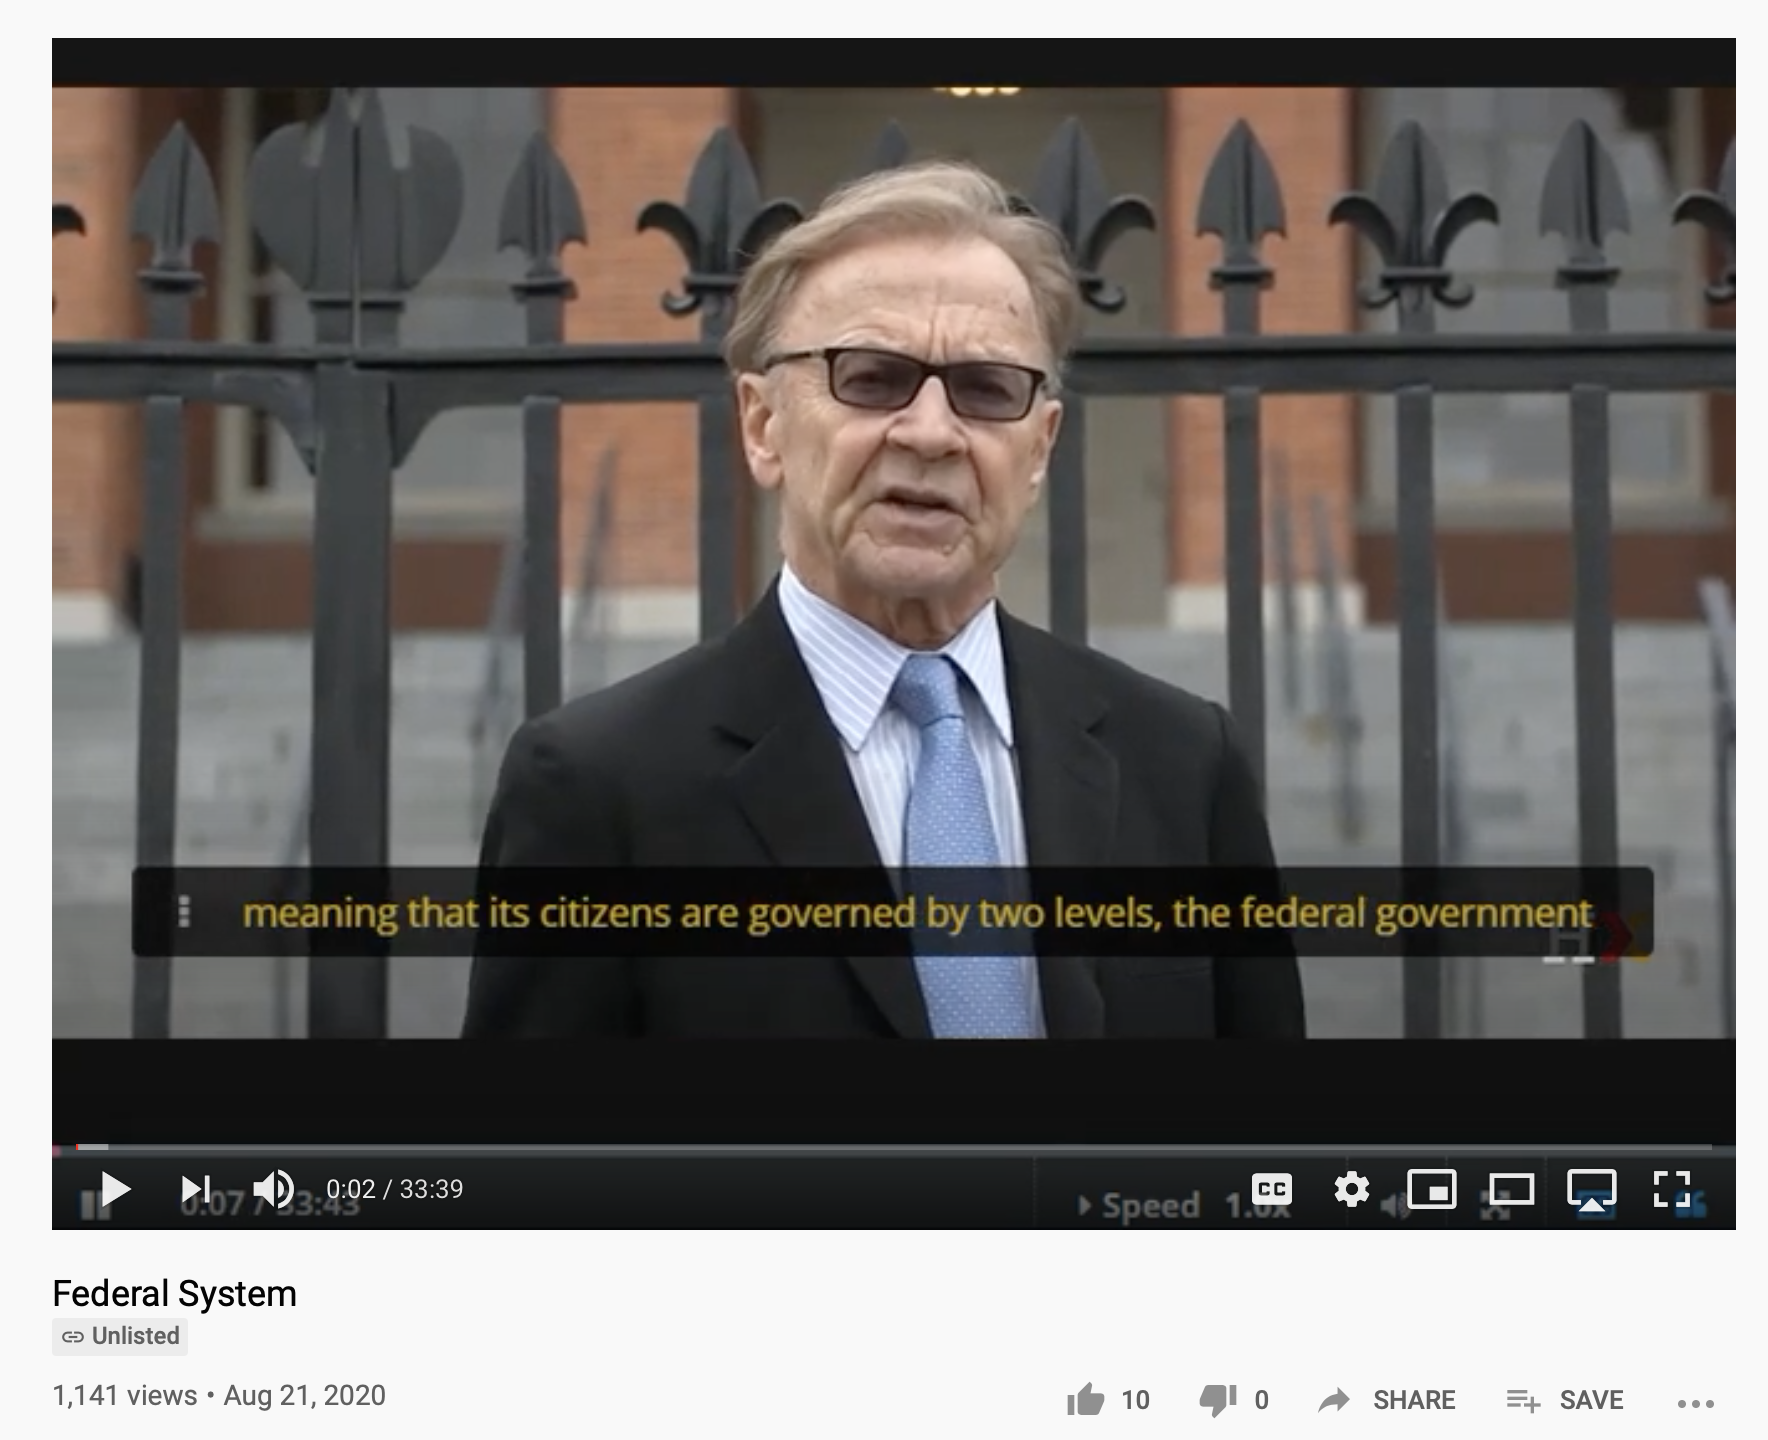 Video lecture by Harvard Professor, William Patterson, on the Federal System available on YouTube and his HarvardXEdX page.